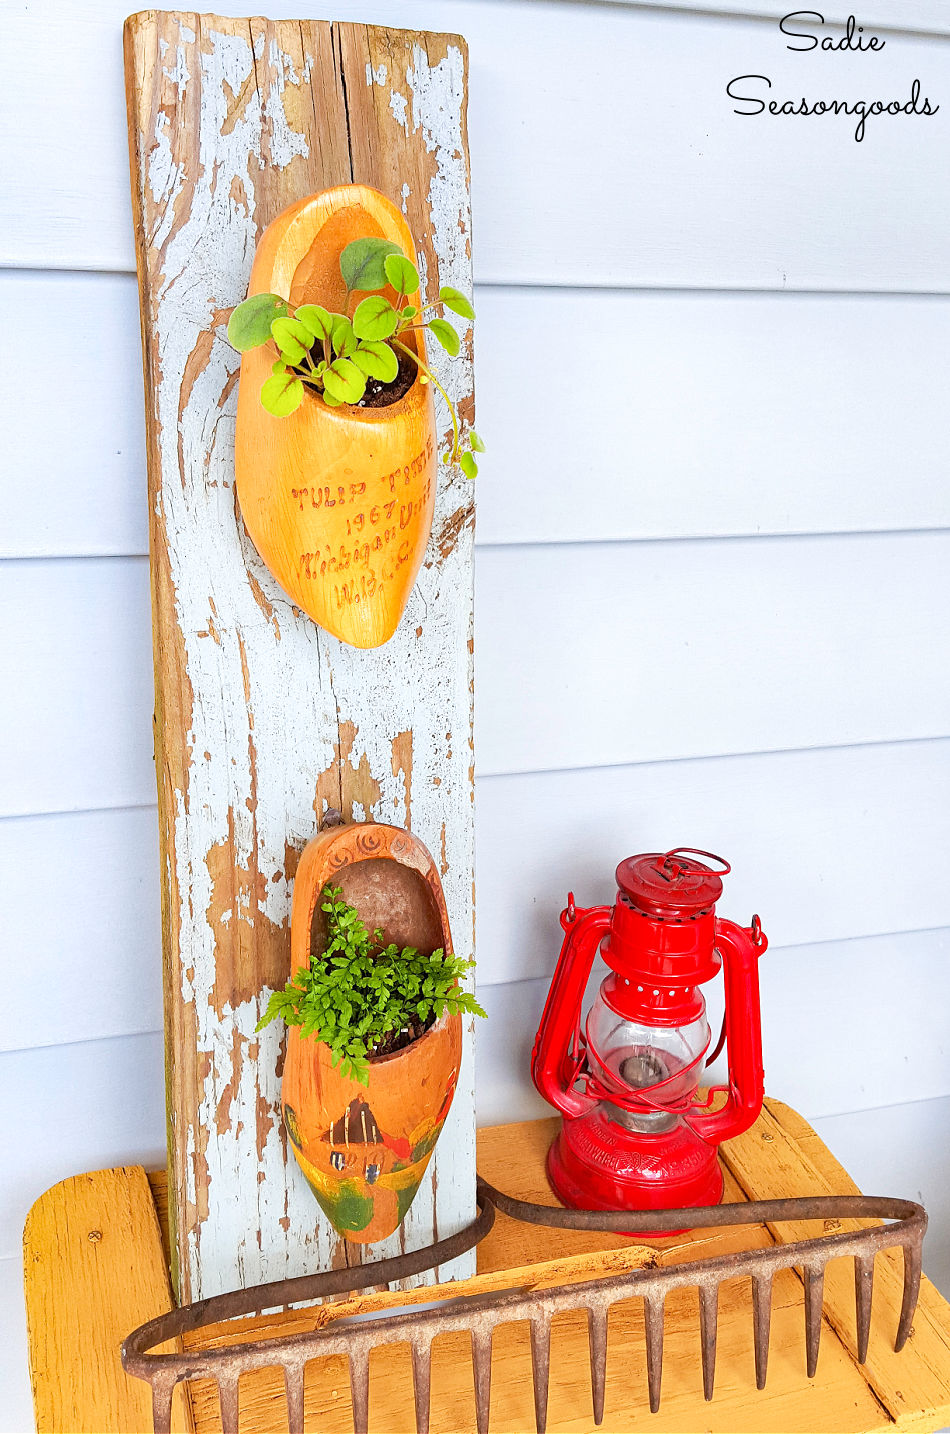 Upcycling shoes as hanging porch planters